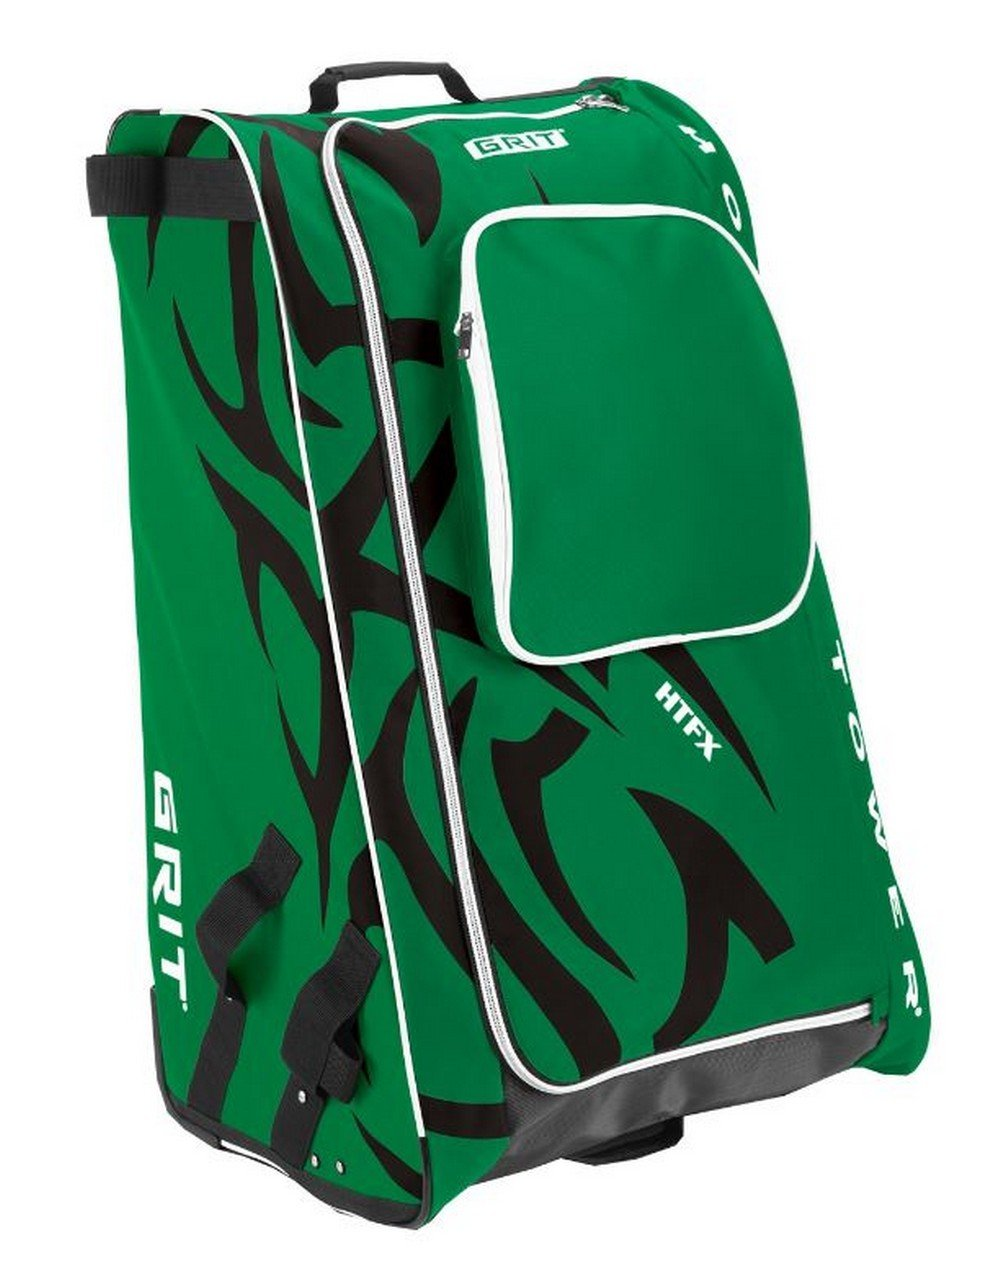 Grit Inc HTFX Hockey Tower 36'' Wheeled Equipment Bag Green HTFX036-DA (Dallas)